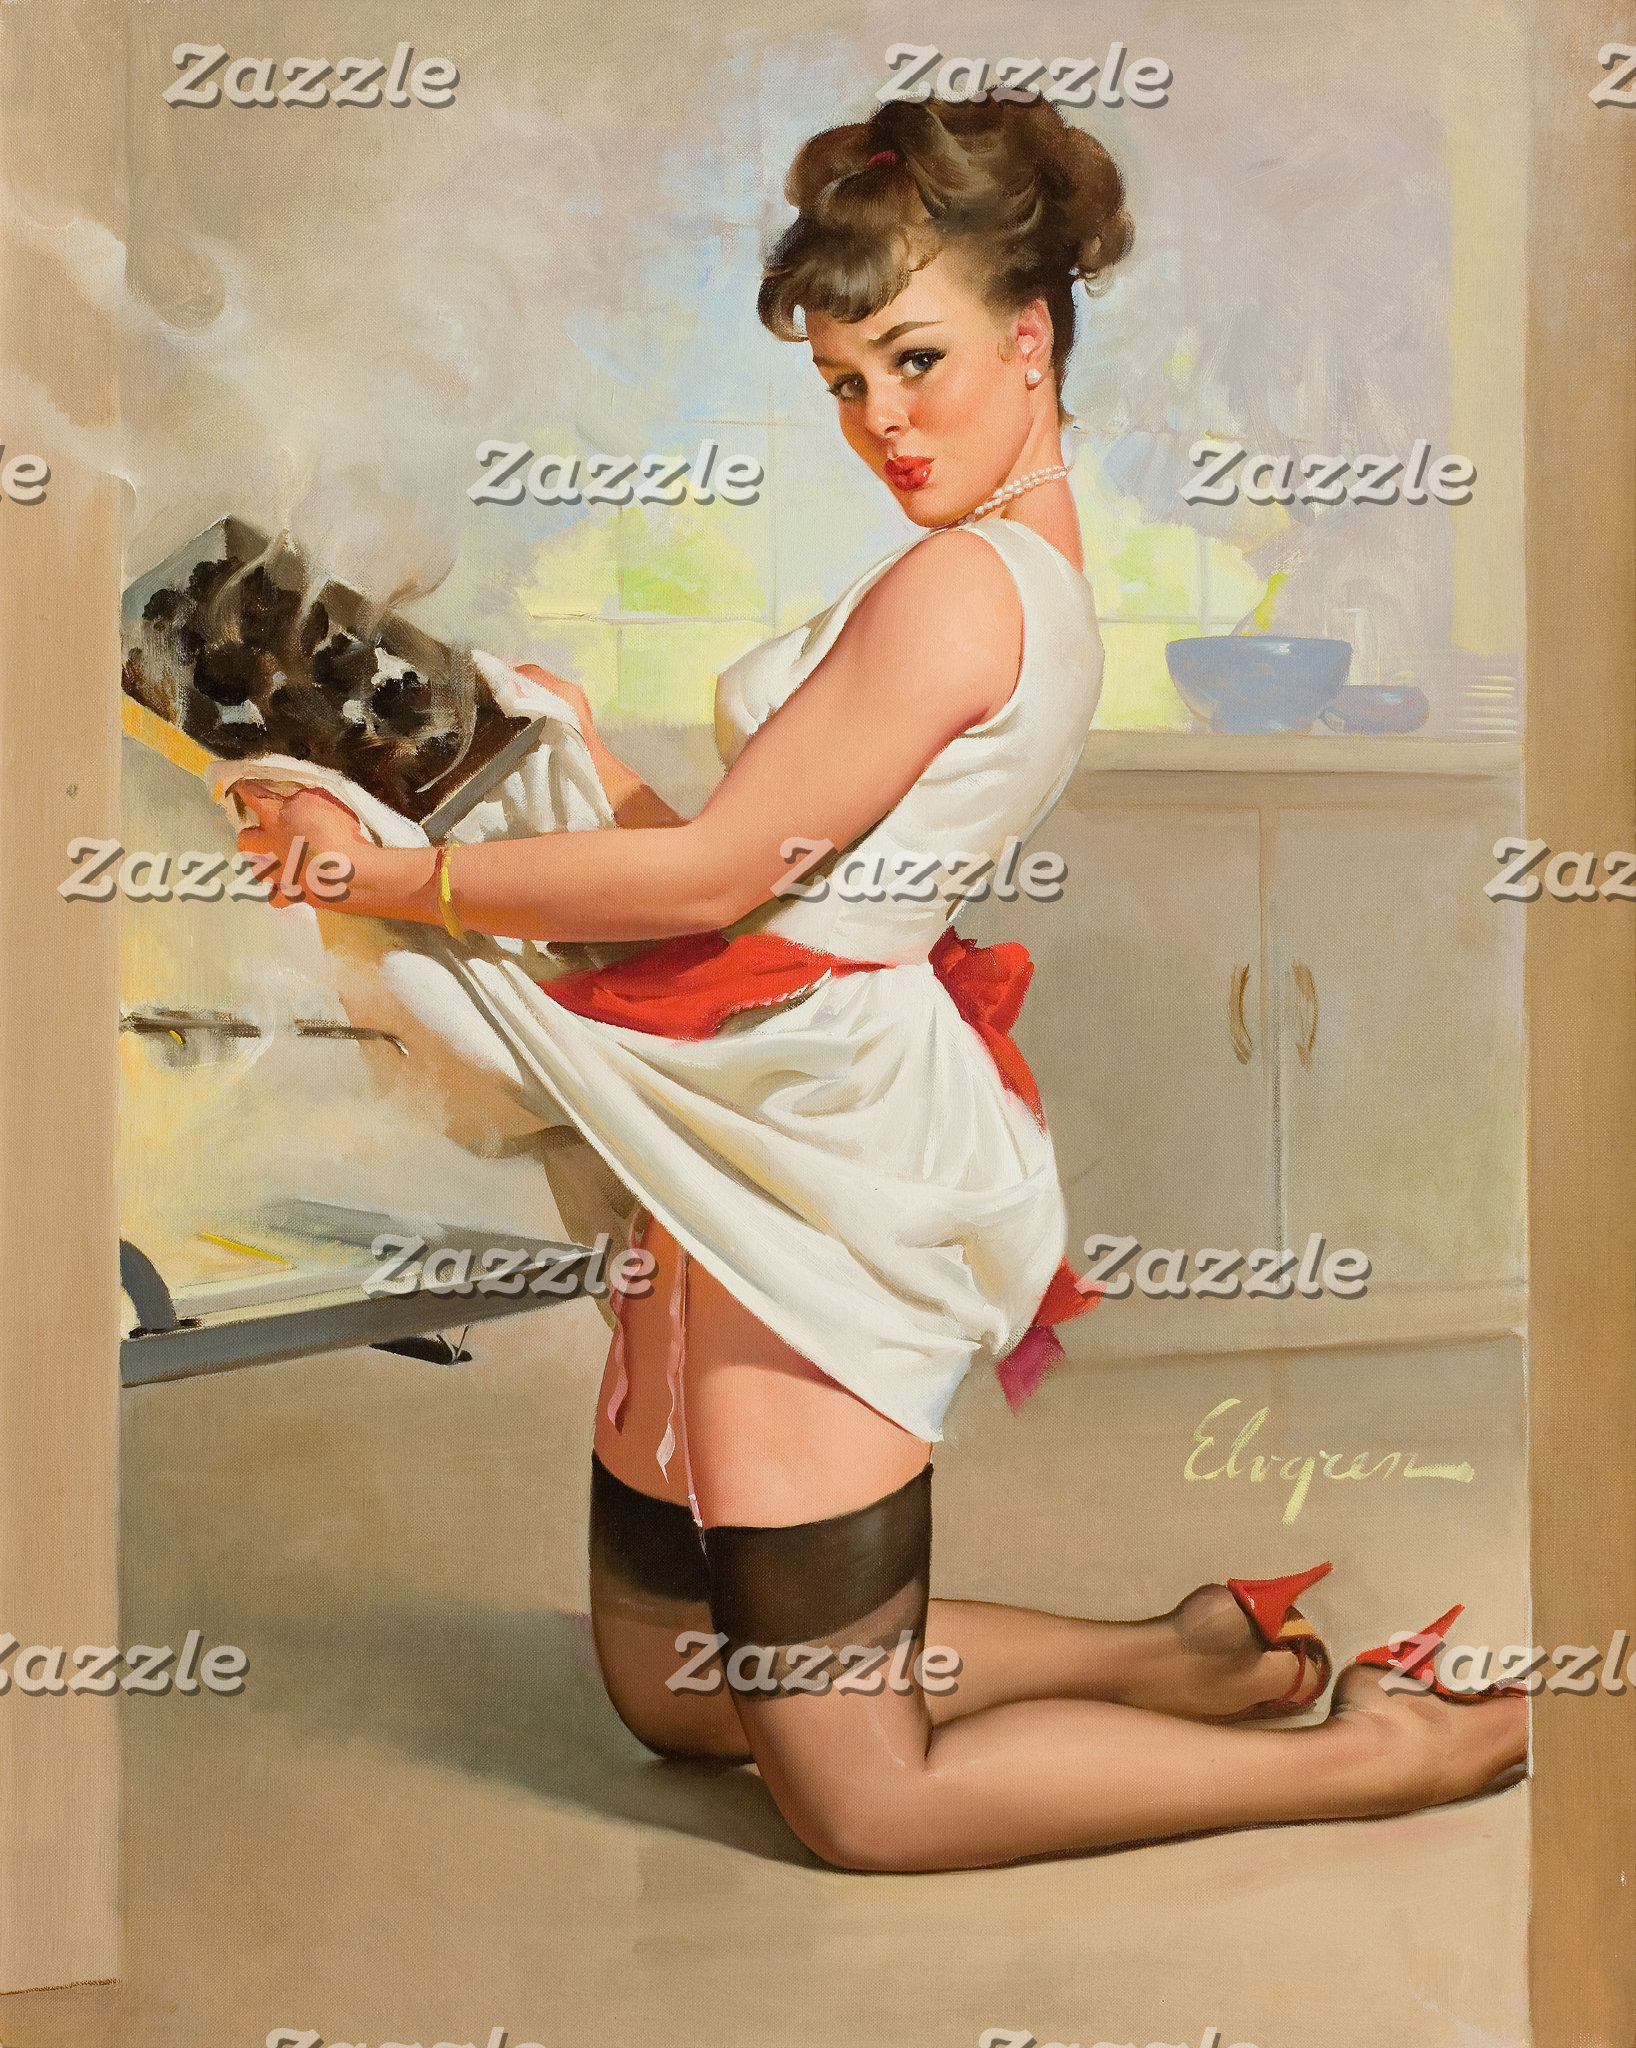 Baking Pinup Girl - Vintage Pin-up Art